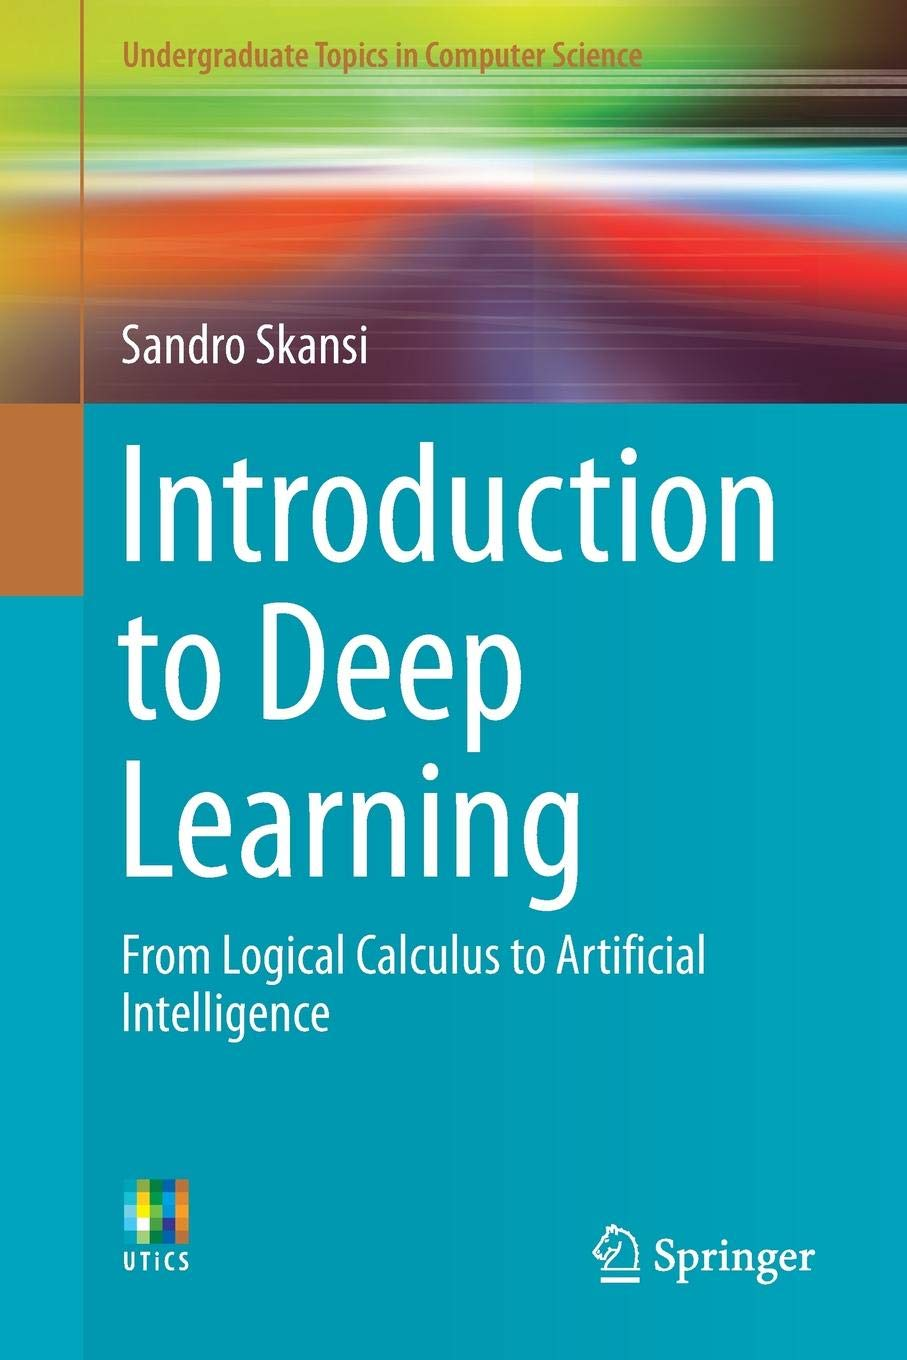 Introduction to Deep Learning: From Logical Calculus to